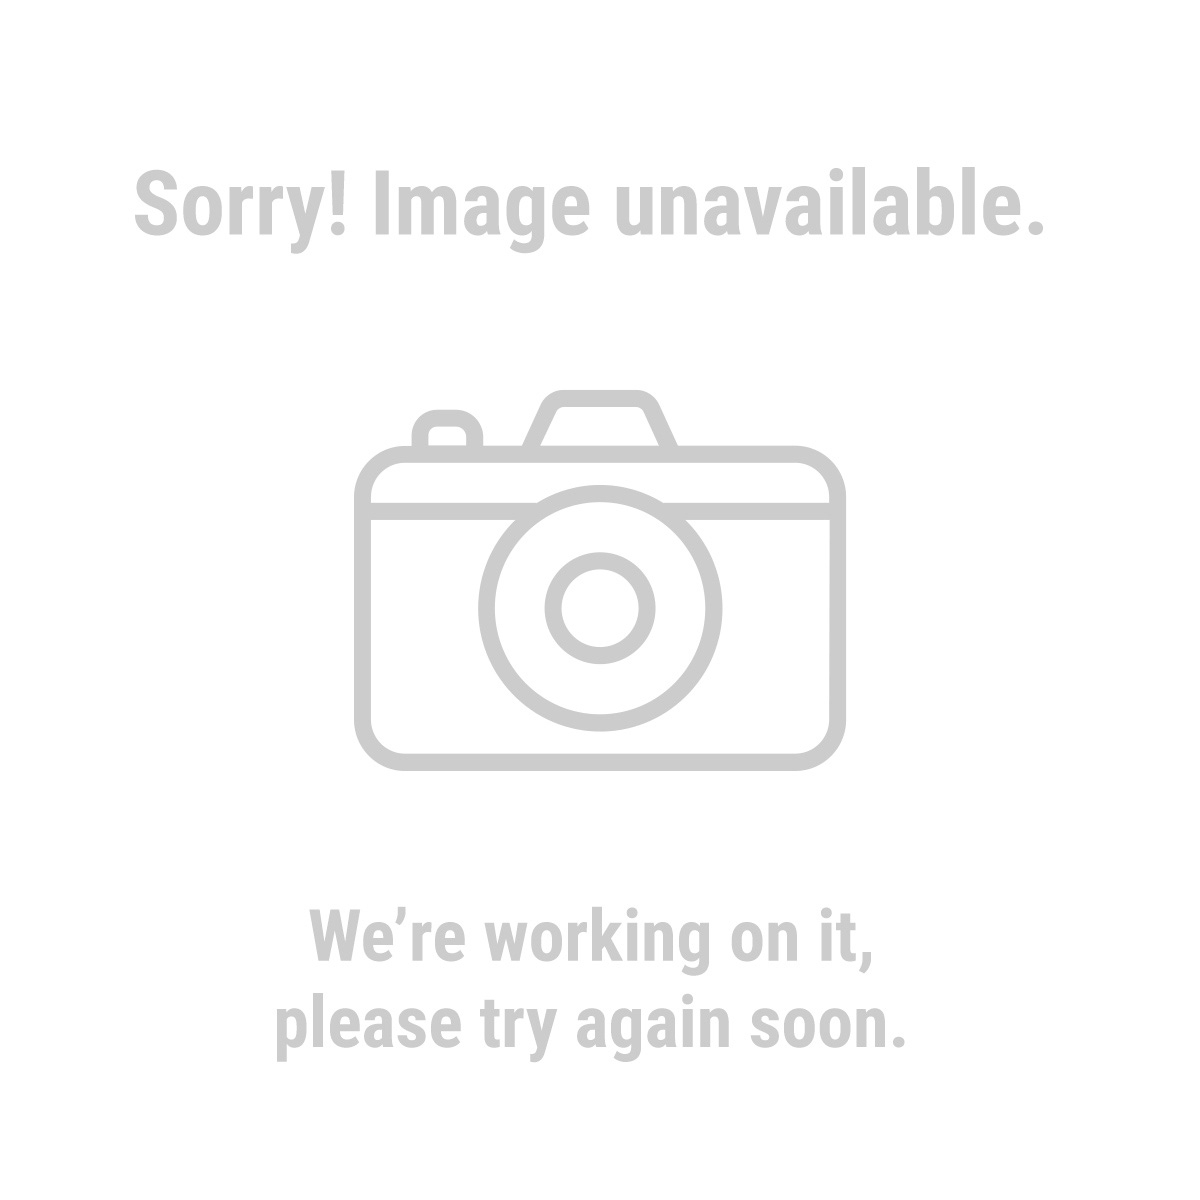 Western Safety 93482 Nonwoven Dust Masks, 50 Pack